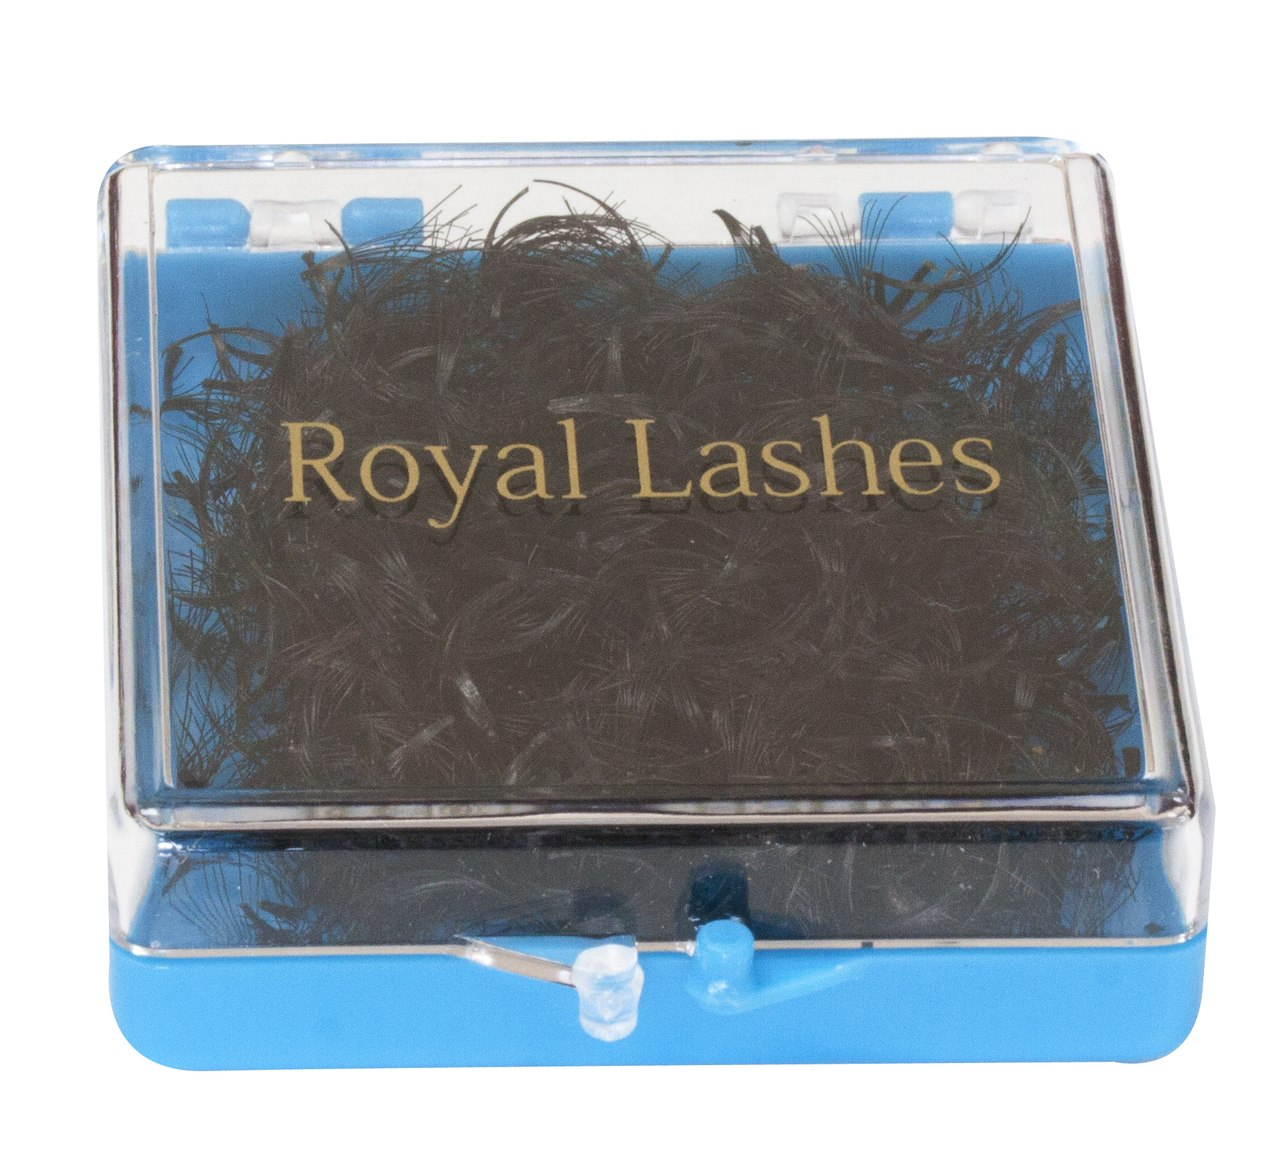 QL Royal Lashes 10 Strands Flare, 1000 pcs (light blue box